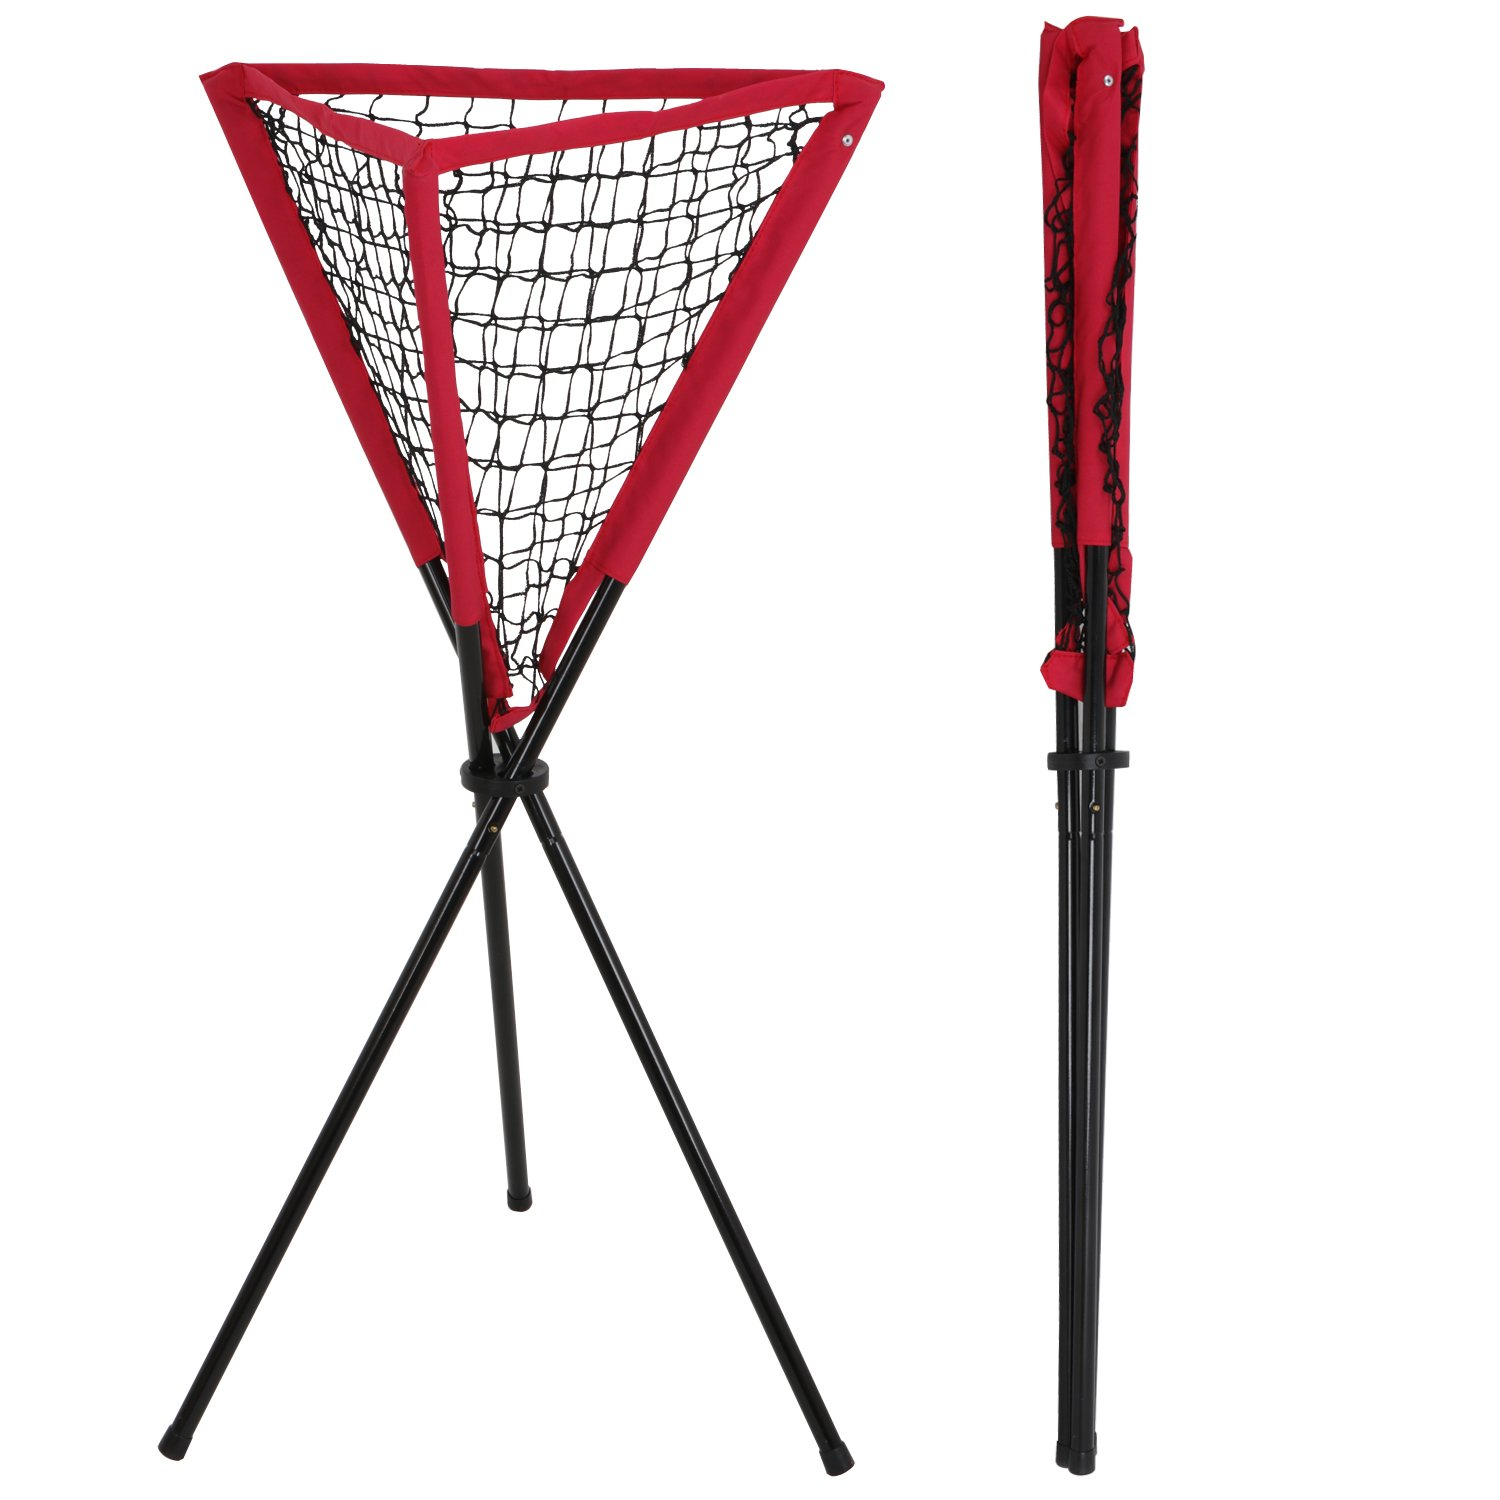 ZENY 7' x 7' Baseball Softball Practice Hitting Pitching Batting Net with Bow Frame,Carry Bag,Great for All Skill Levels (Ball Caddy) by ZENY